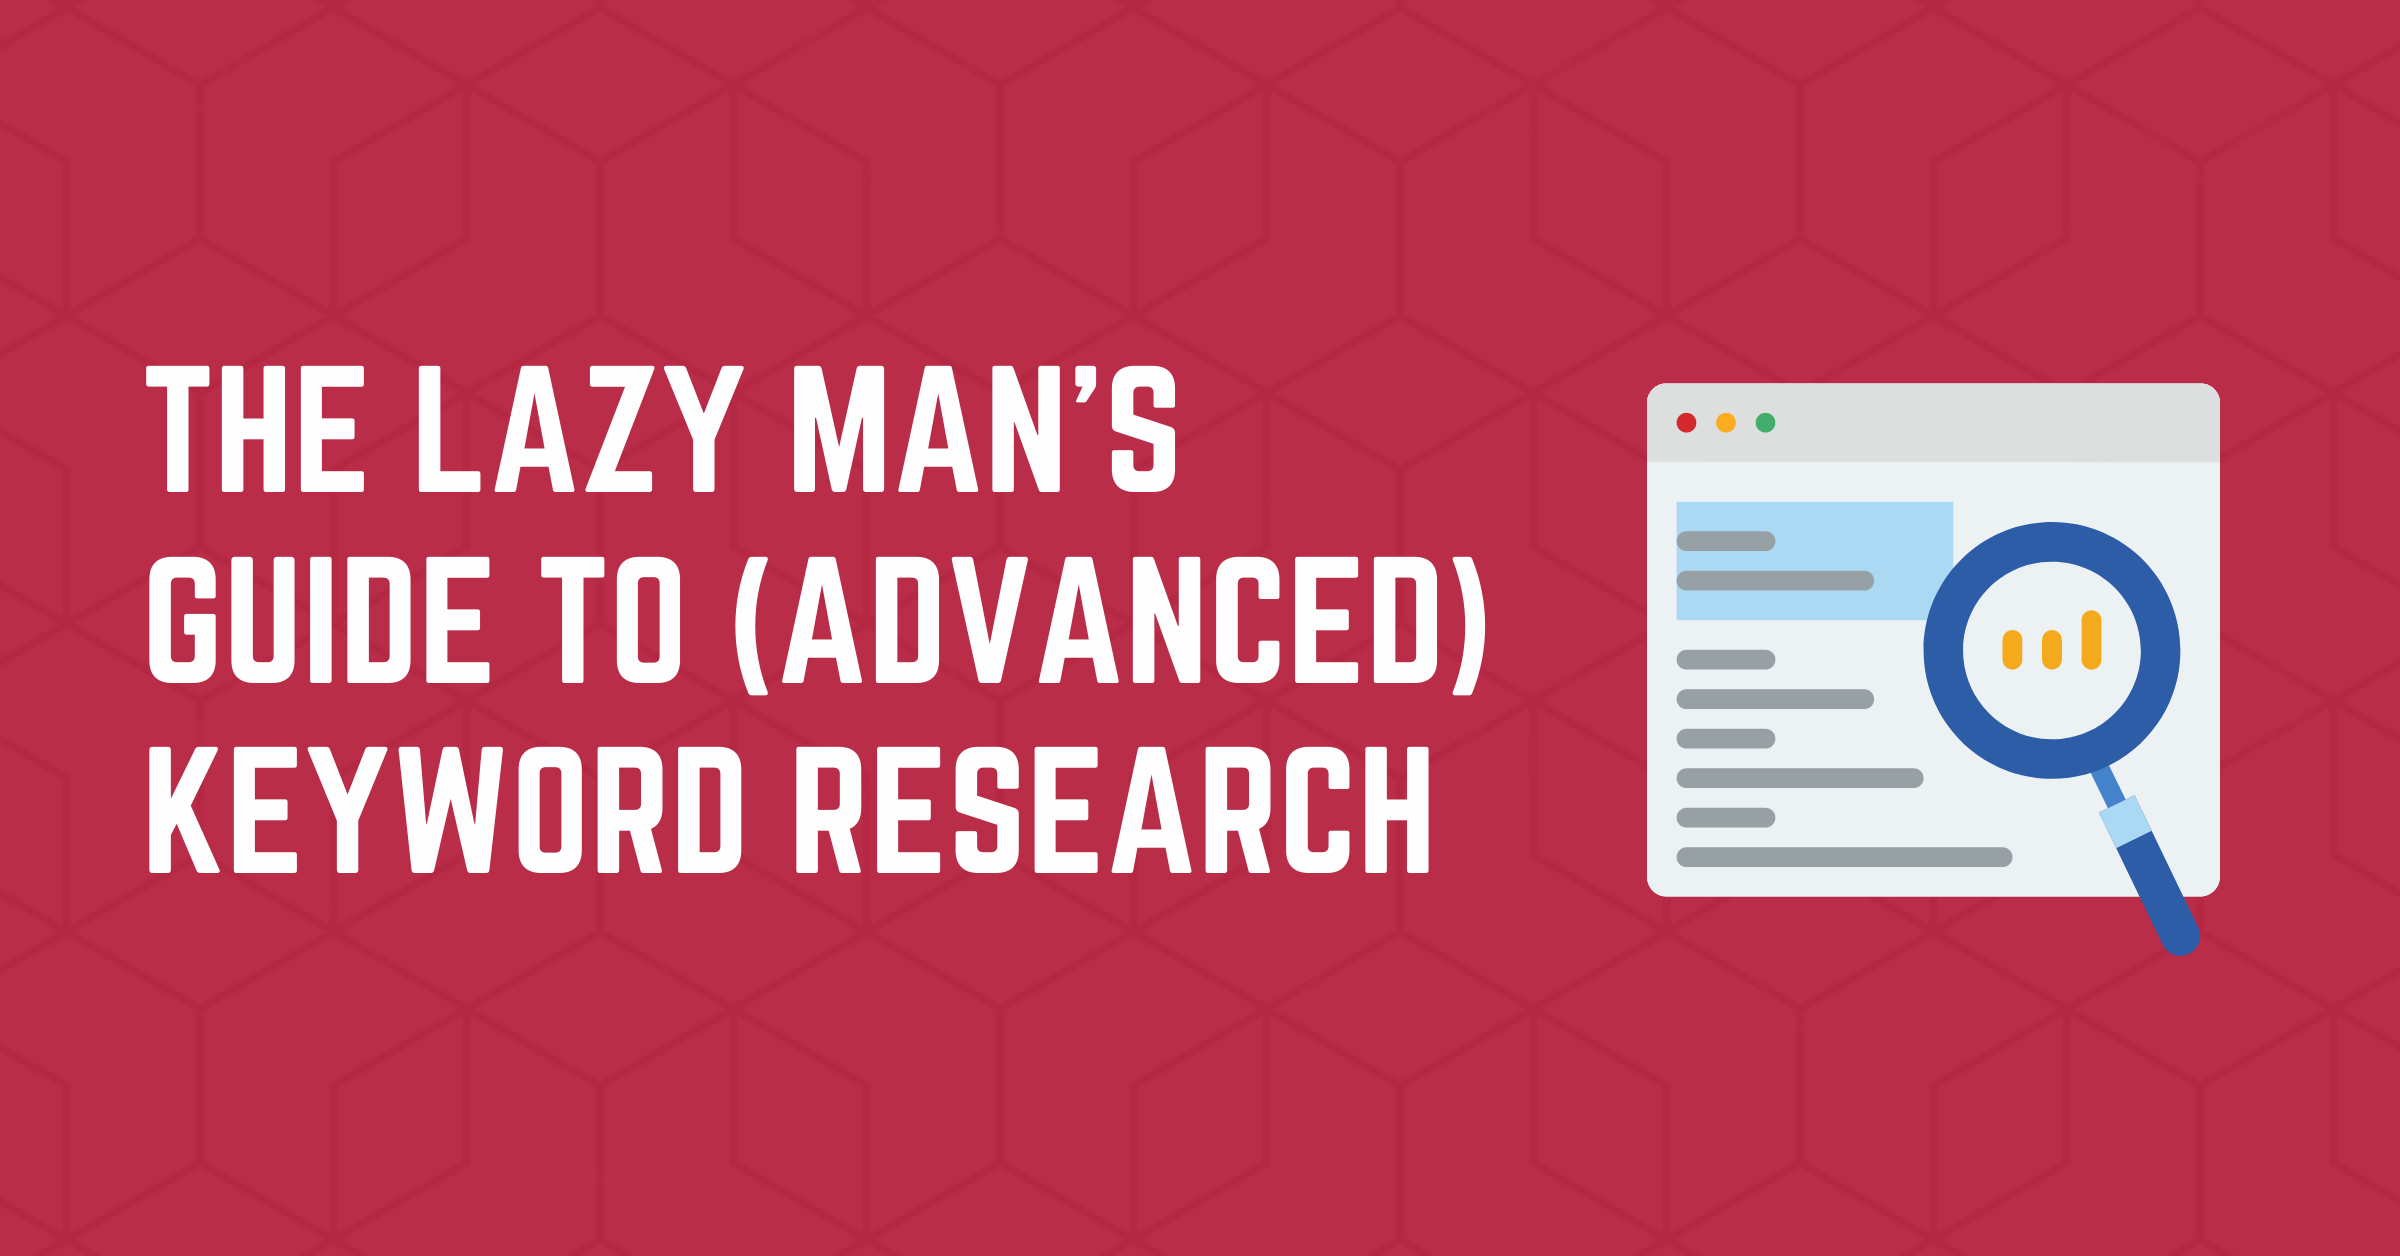 The Lazy Man's guide to (advanced) keyword research